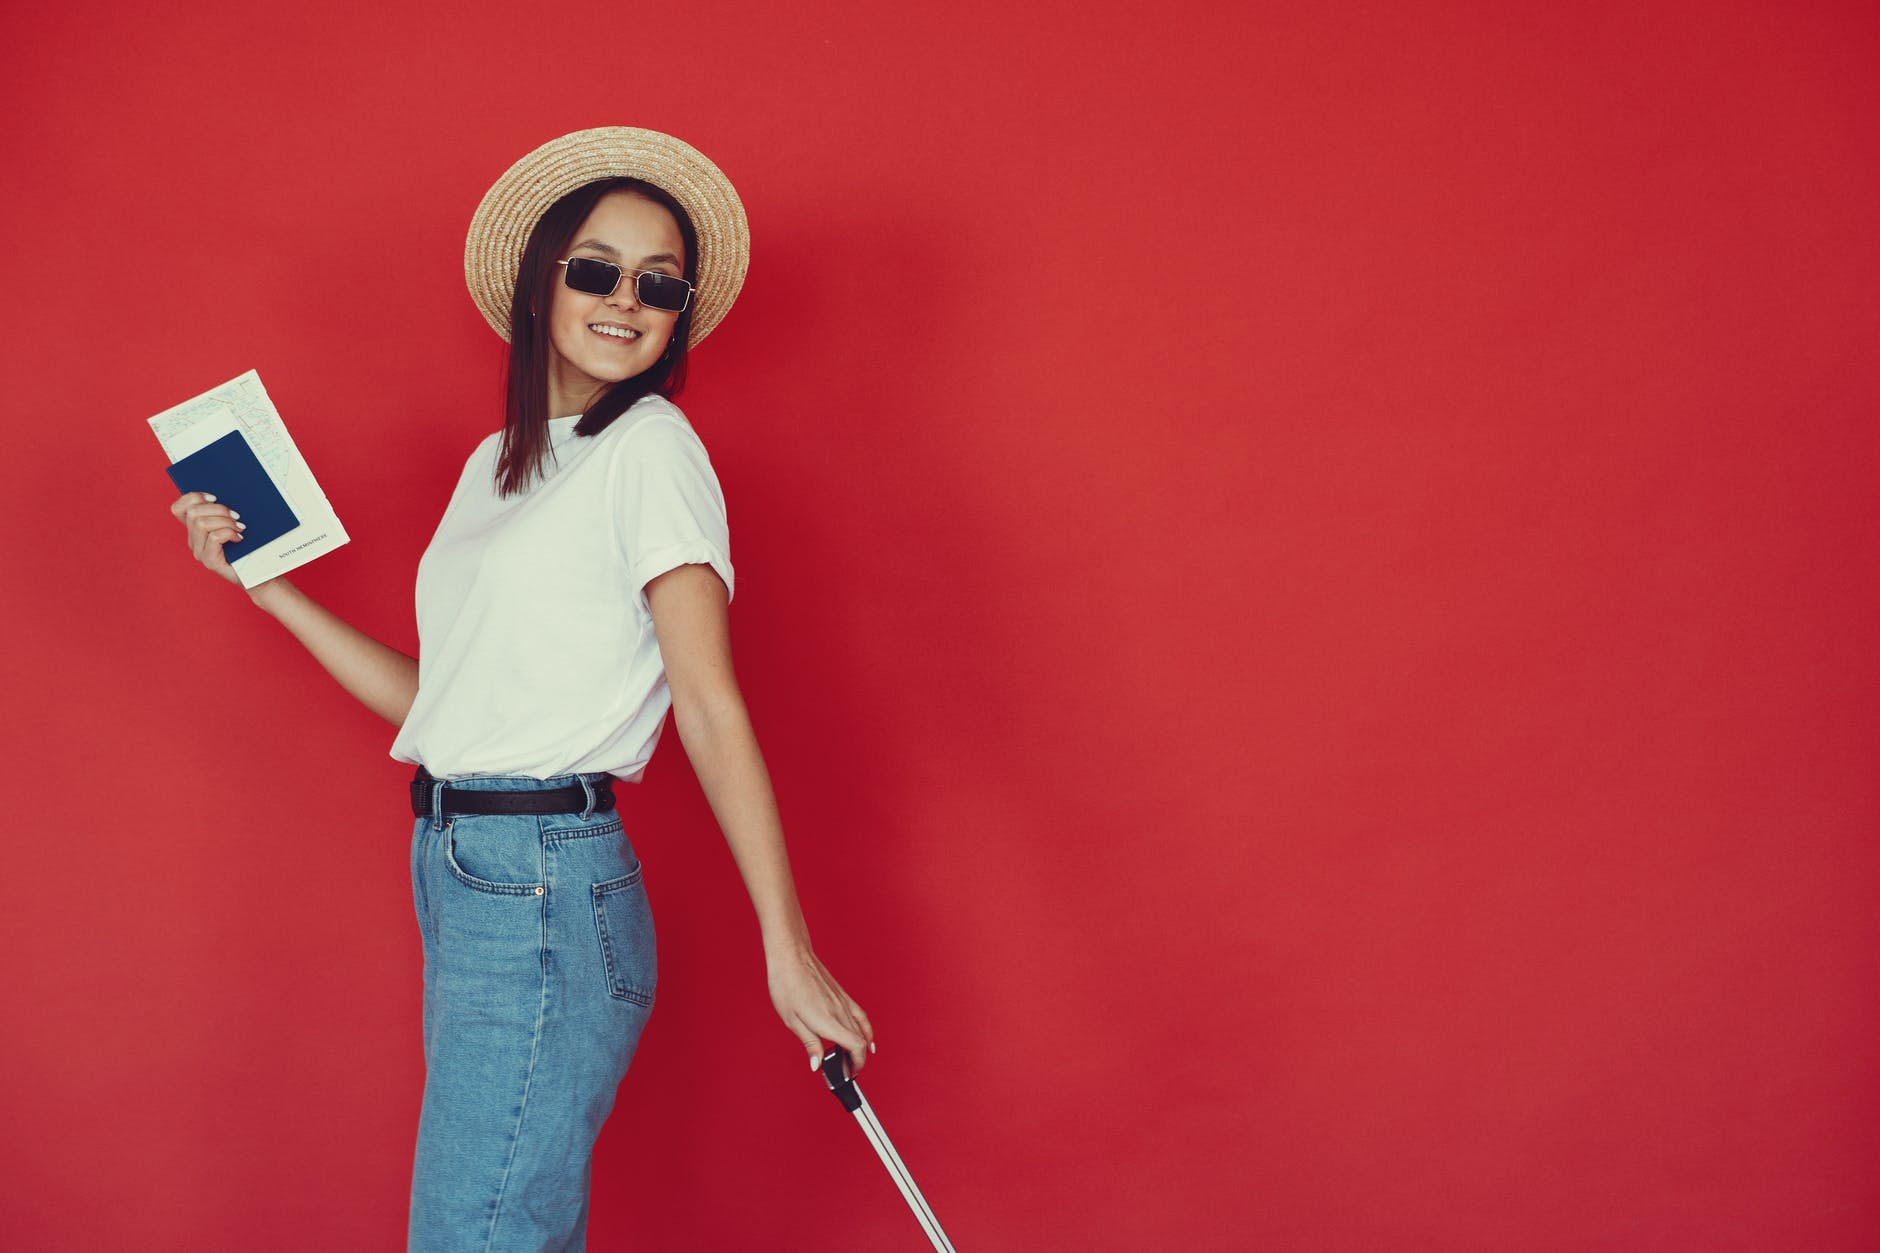 smiling young female with luggage and passport on red background